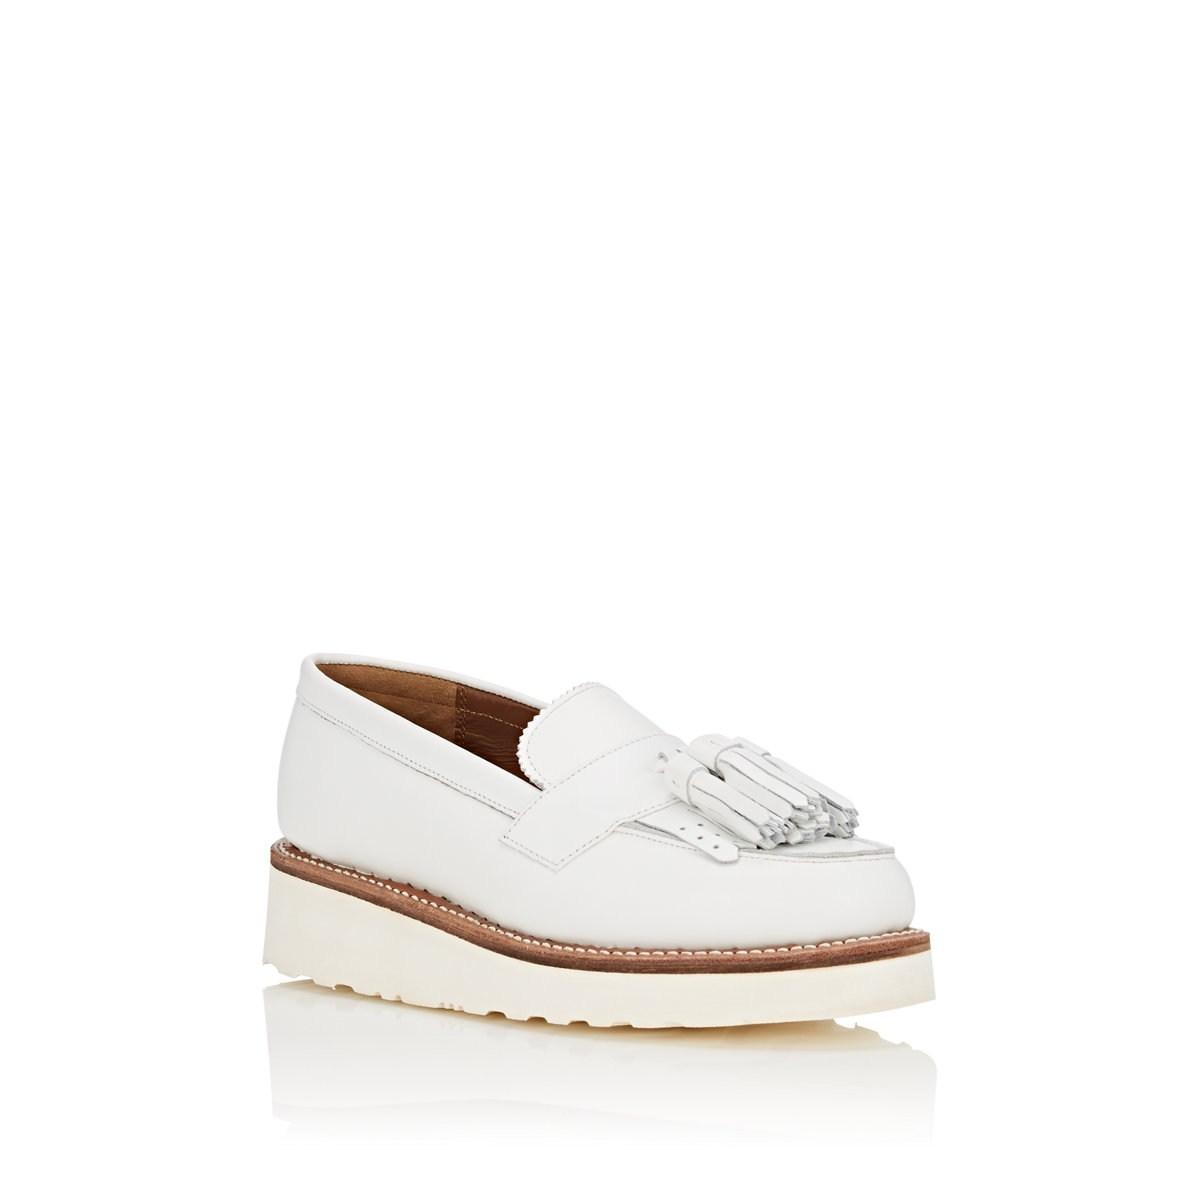 5350708813e GRENSON - White Clara Leather Wedge Loafers - Lyst. View fullscreen